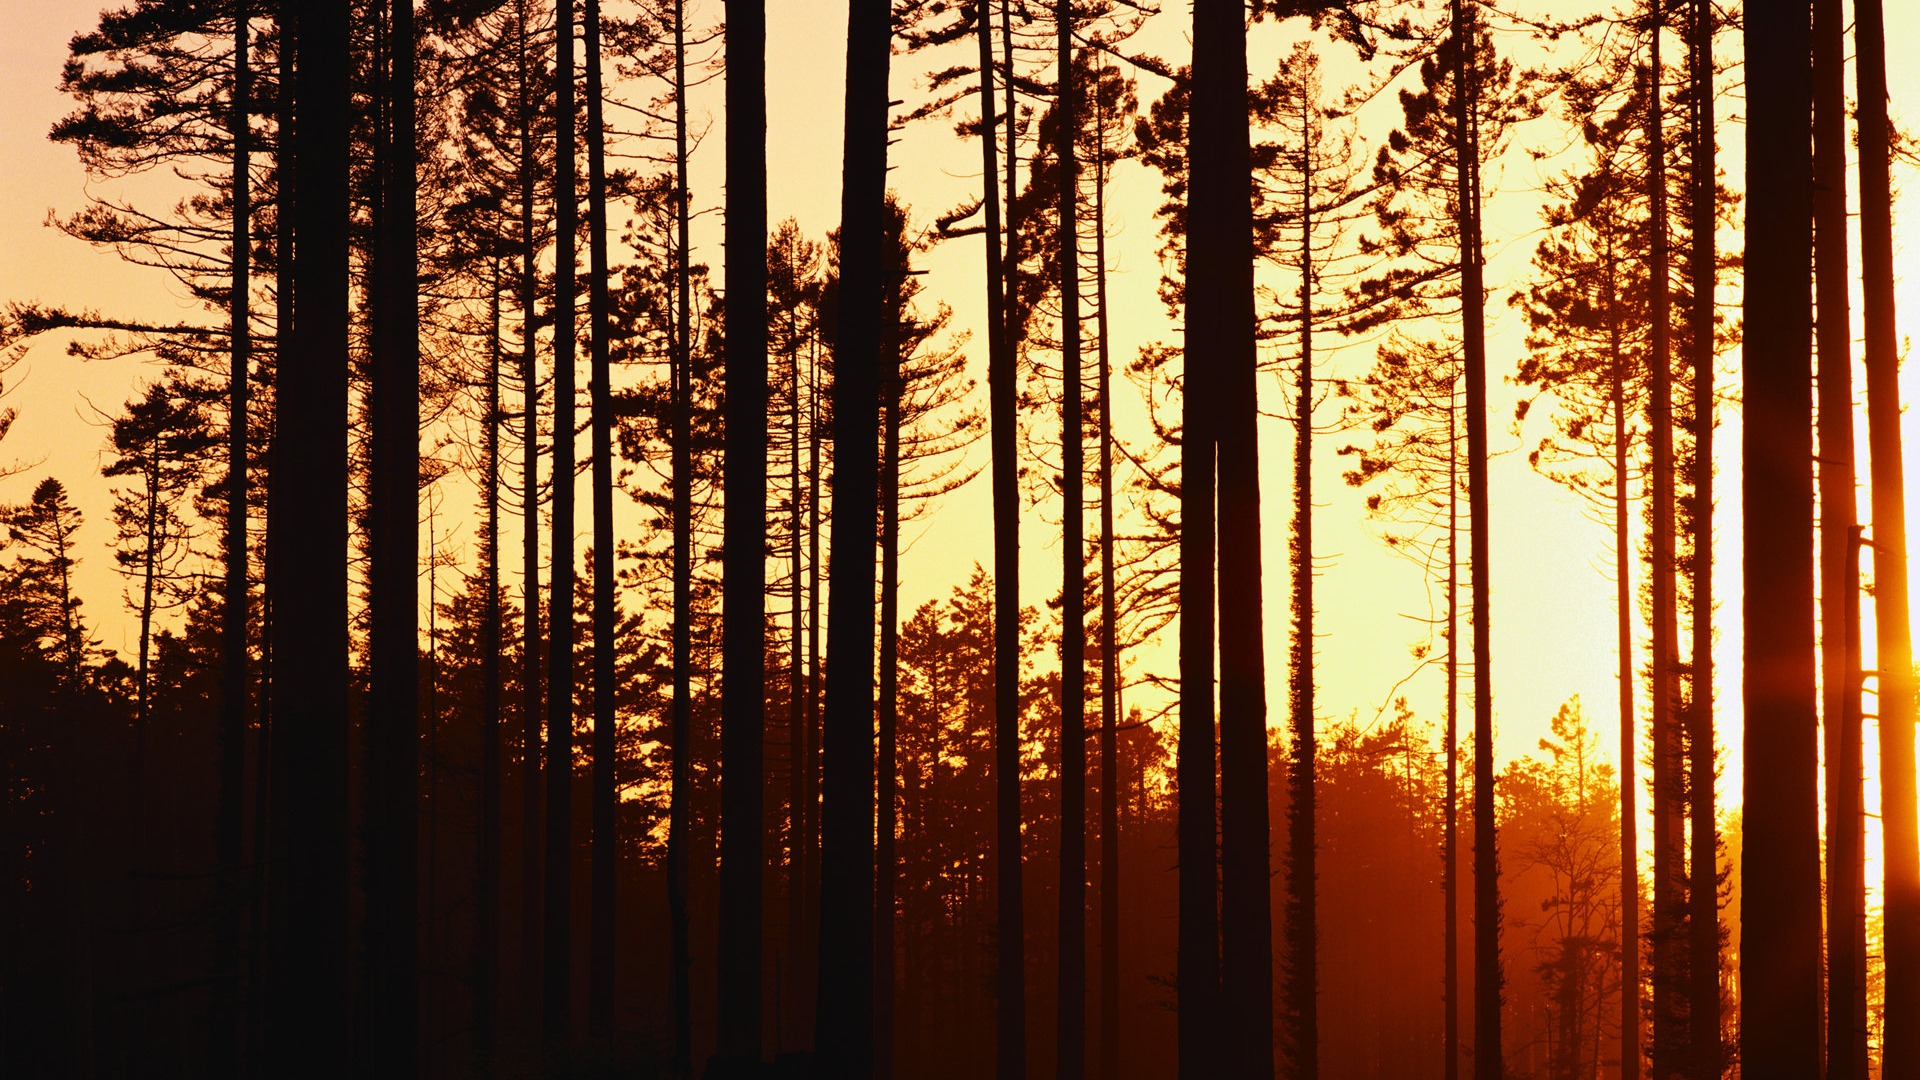 Woods Sunset Wallpaper